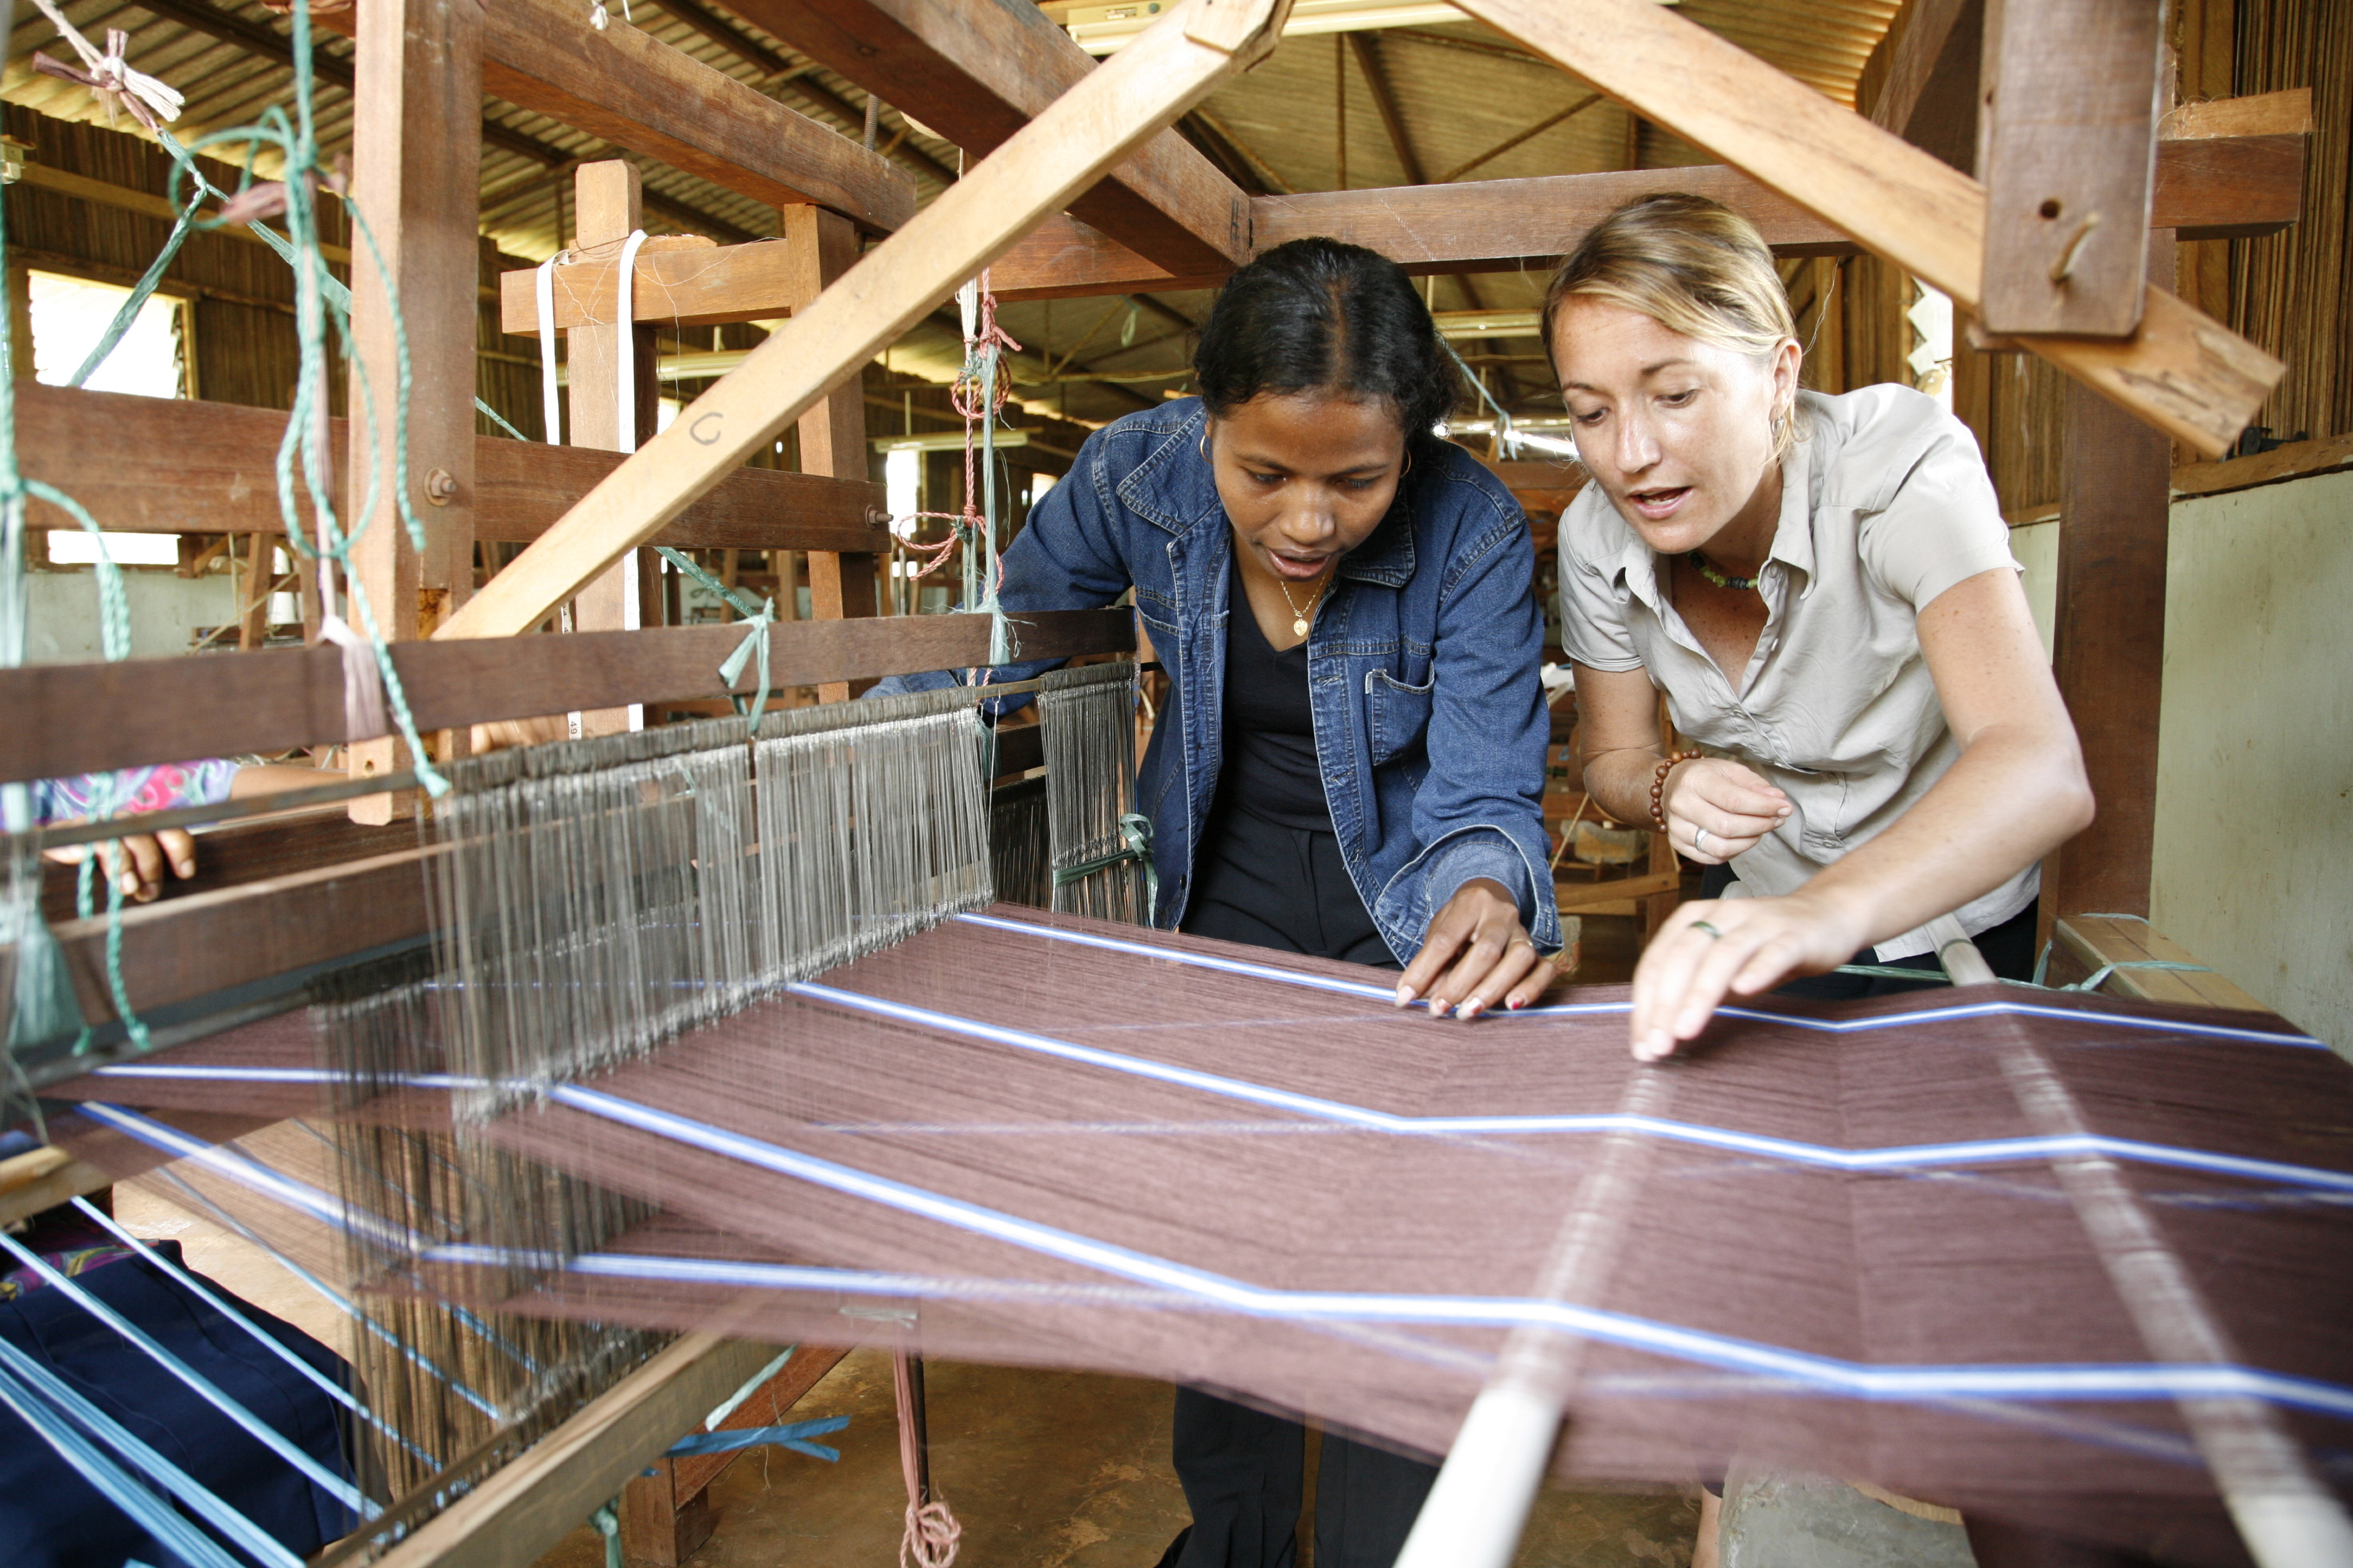 Australian volunteer Louise Higgins helps a local woman set up a floor loom ready for weaving. Photo by Debra Plueckhahn/Australian Volunteers International